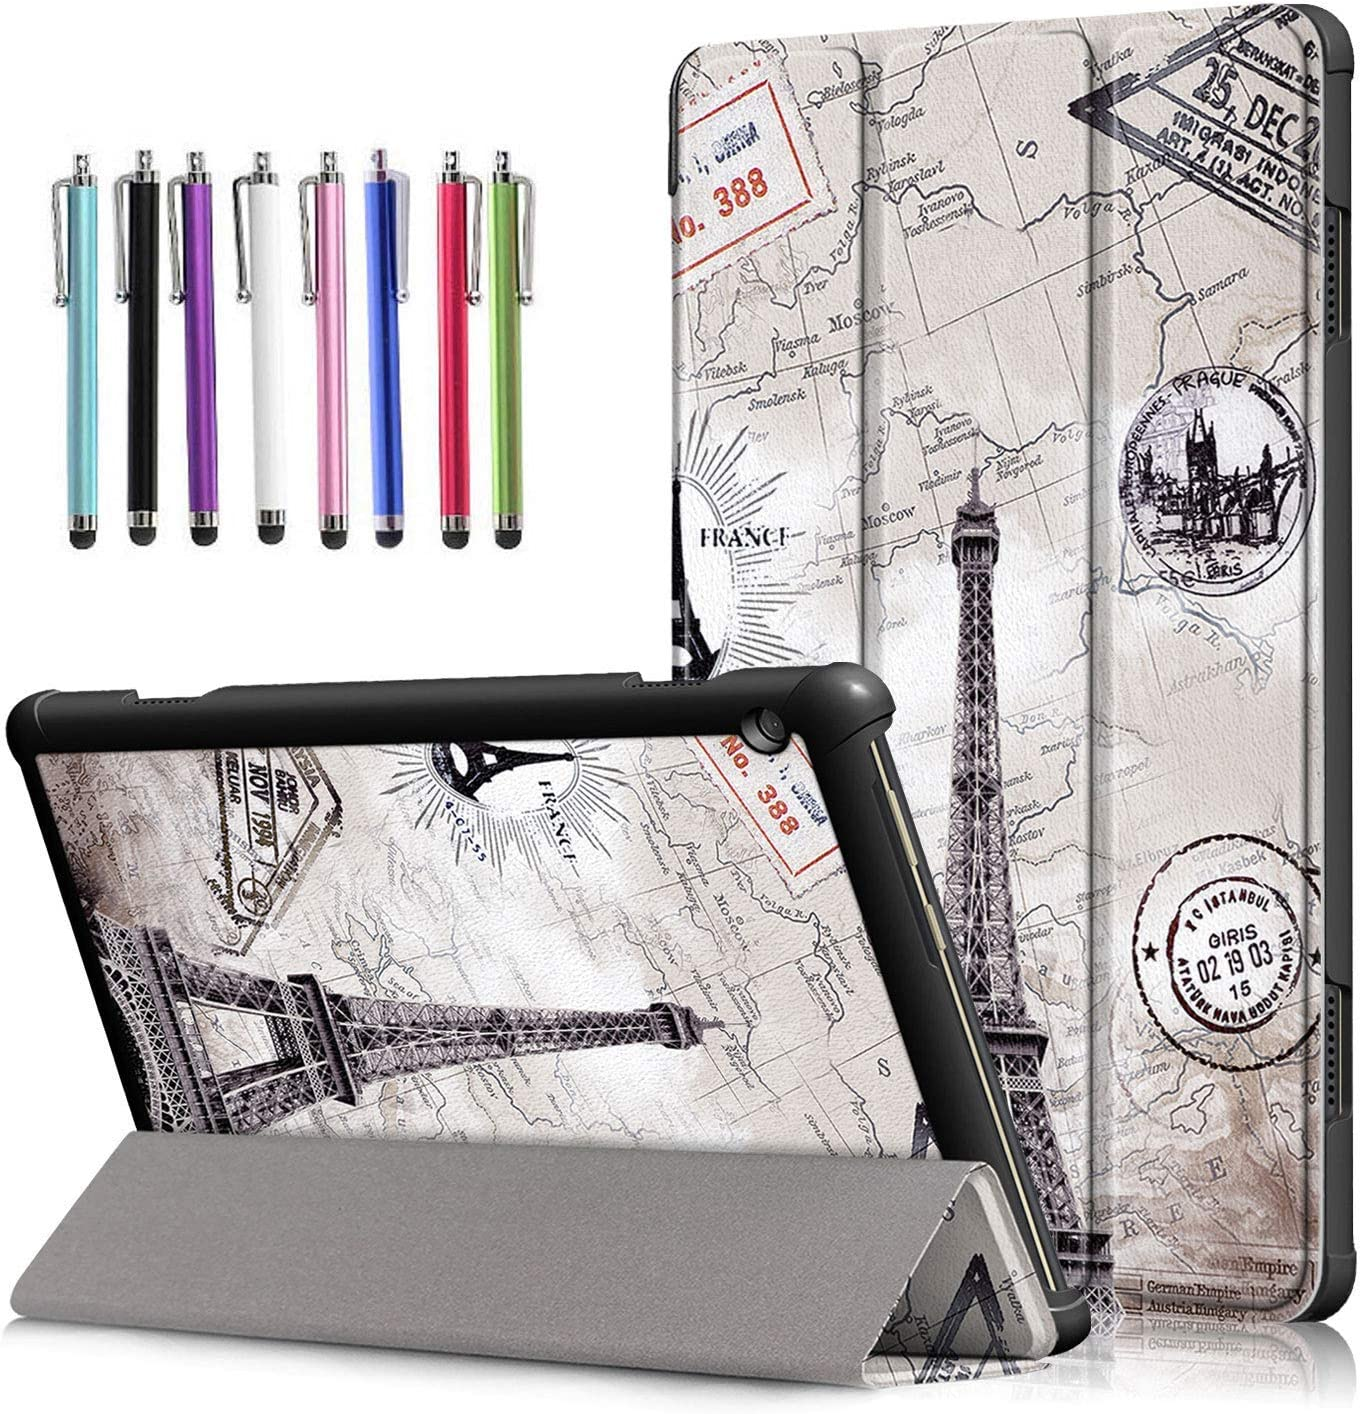 Epicgadget Case for Lenovo Smart Tab M10 TB-X505F/TB-X605F, Slim Lightweight Trifold Shell Stand Cover Case for Lenovo Tablet M10 10.1 Inch Display 2019/2018 Released (Eiffel Tower)